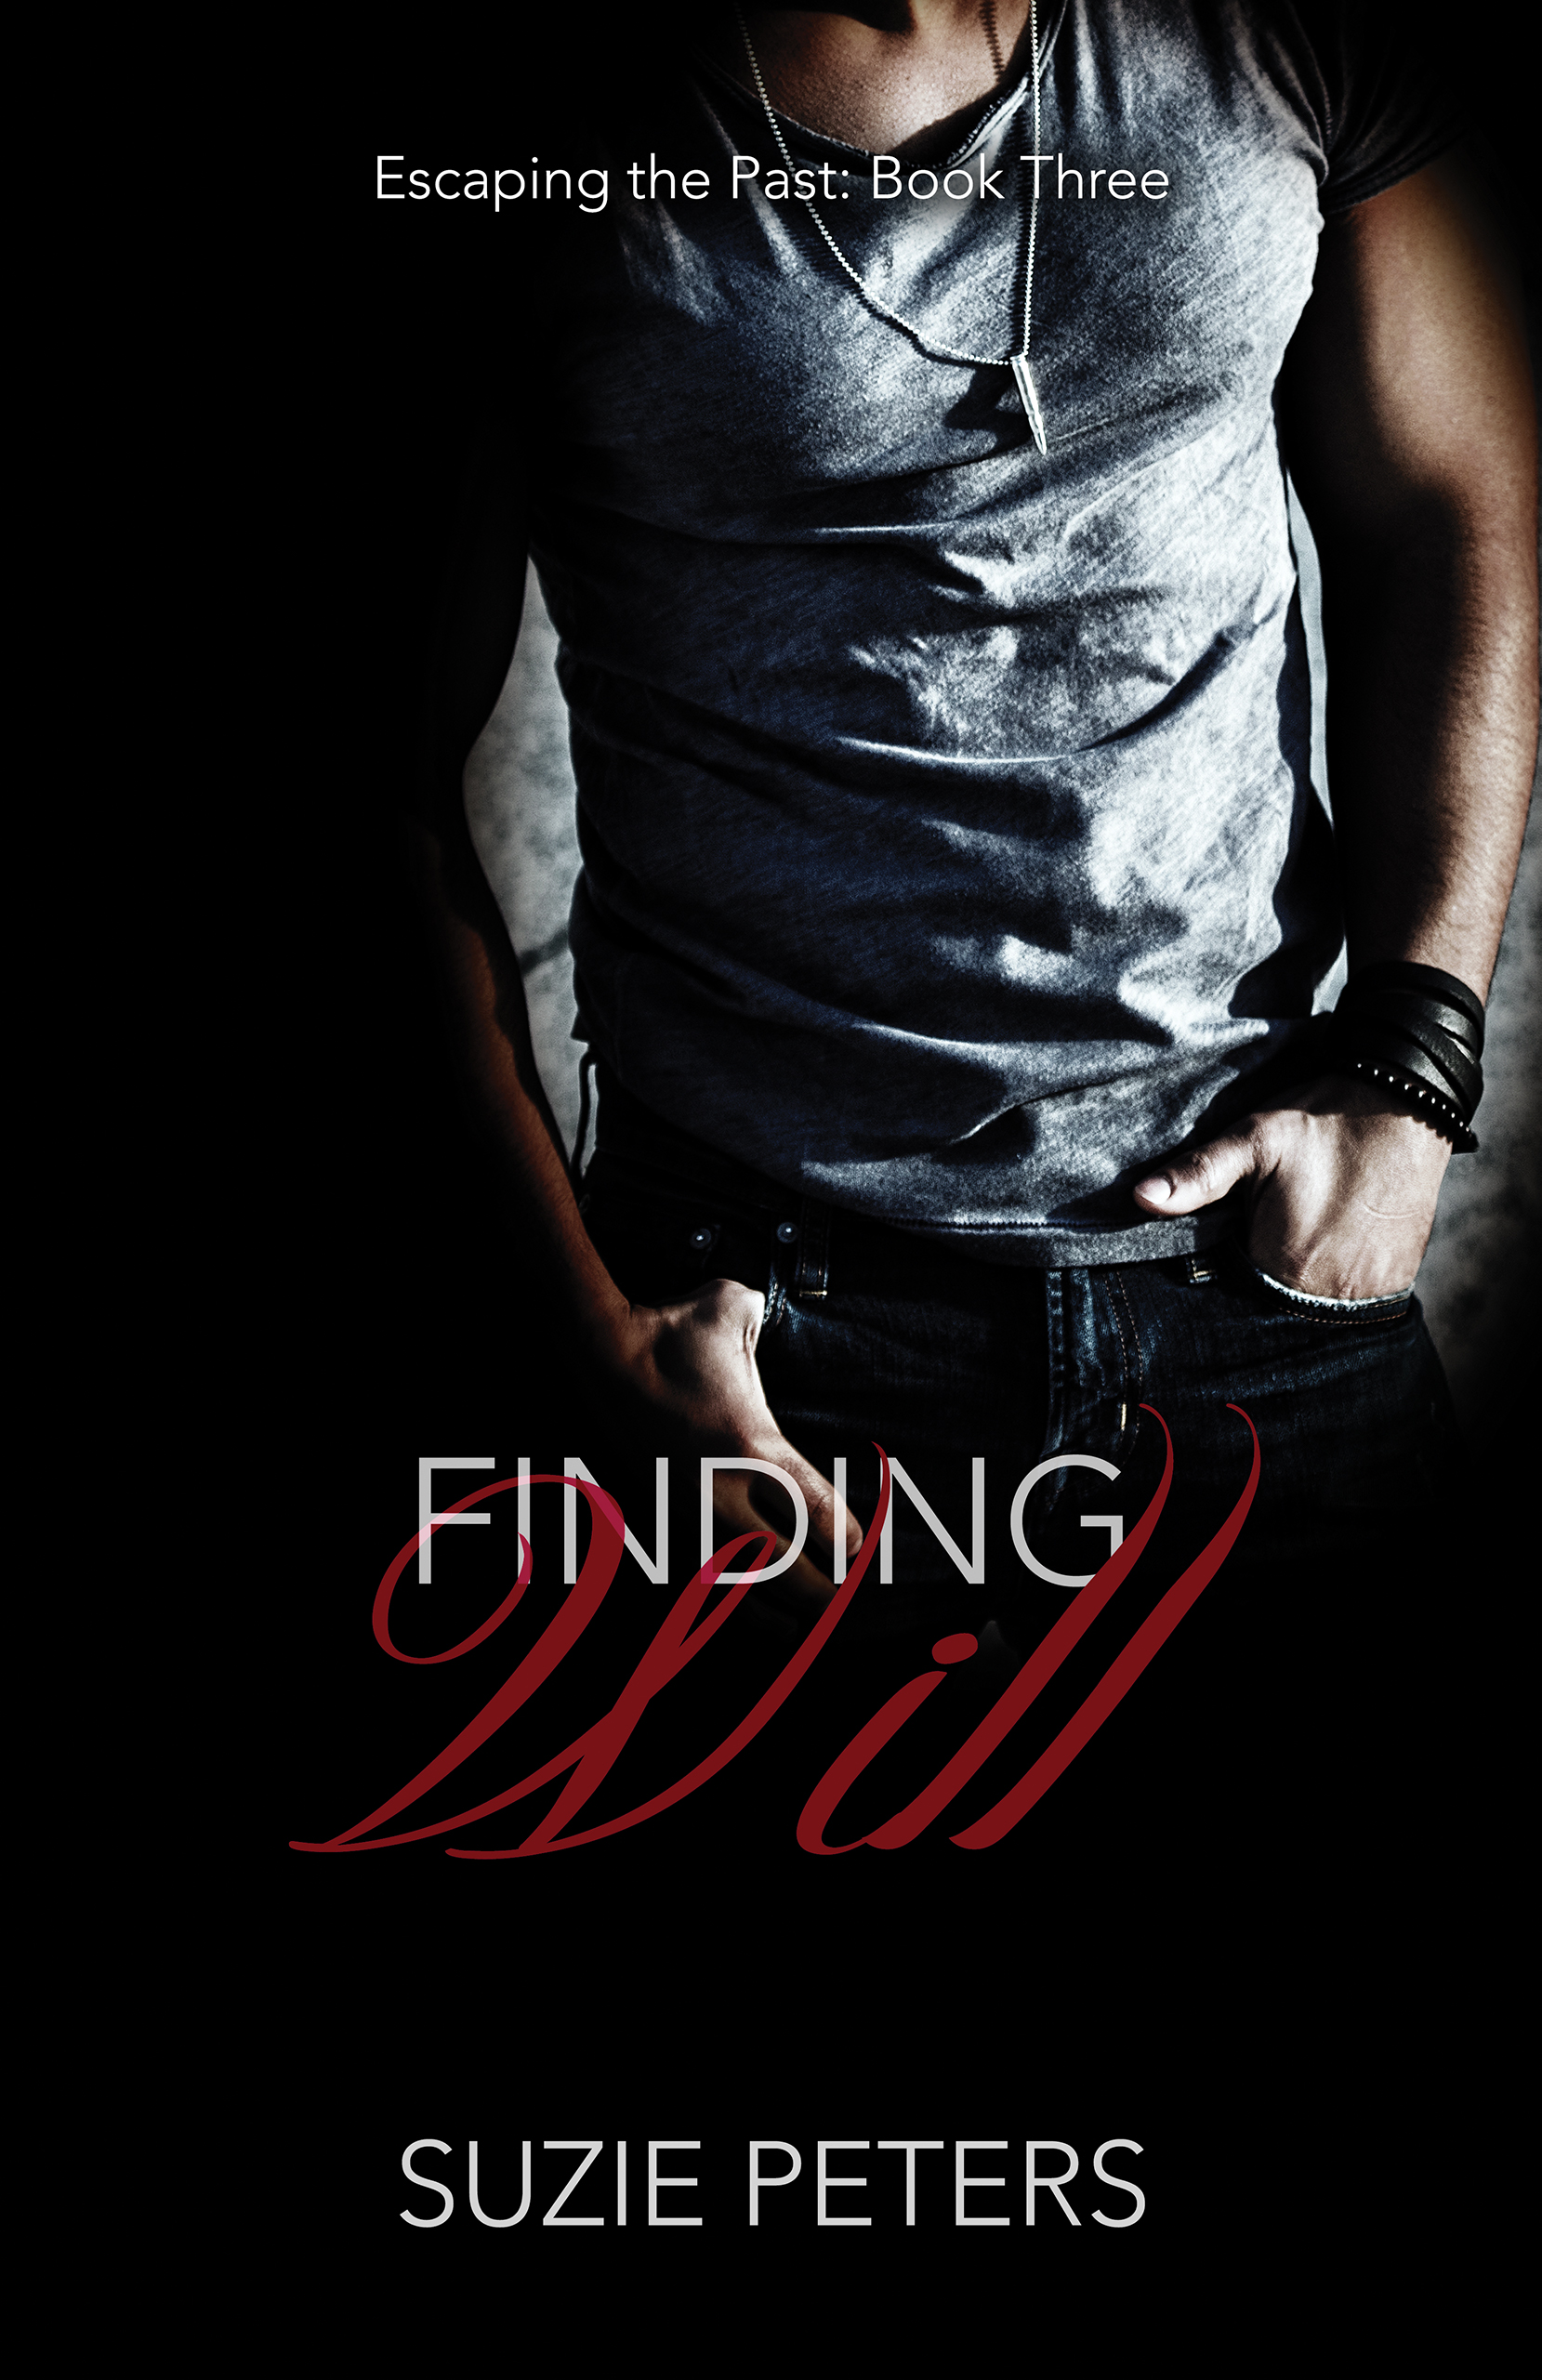 Finding Will by Suzie Peters front cover image.